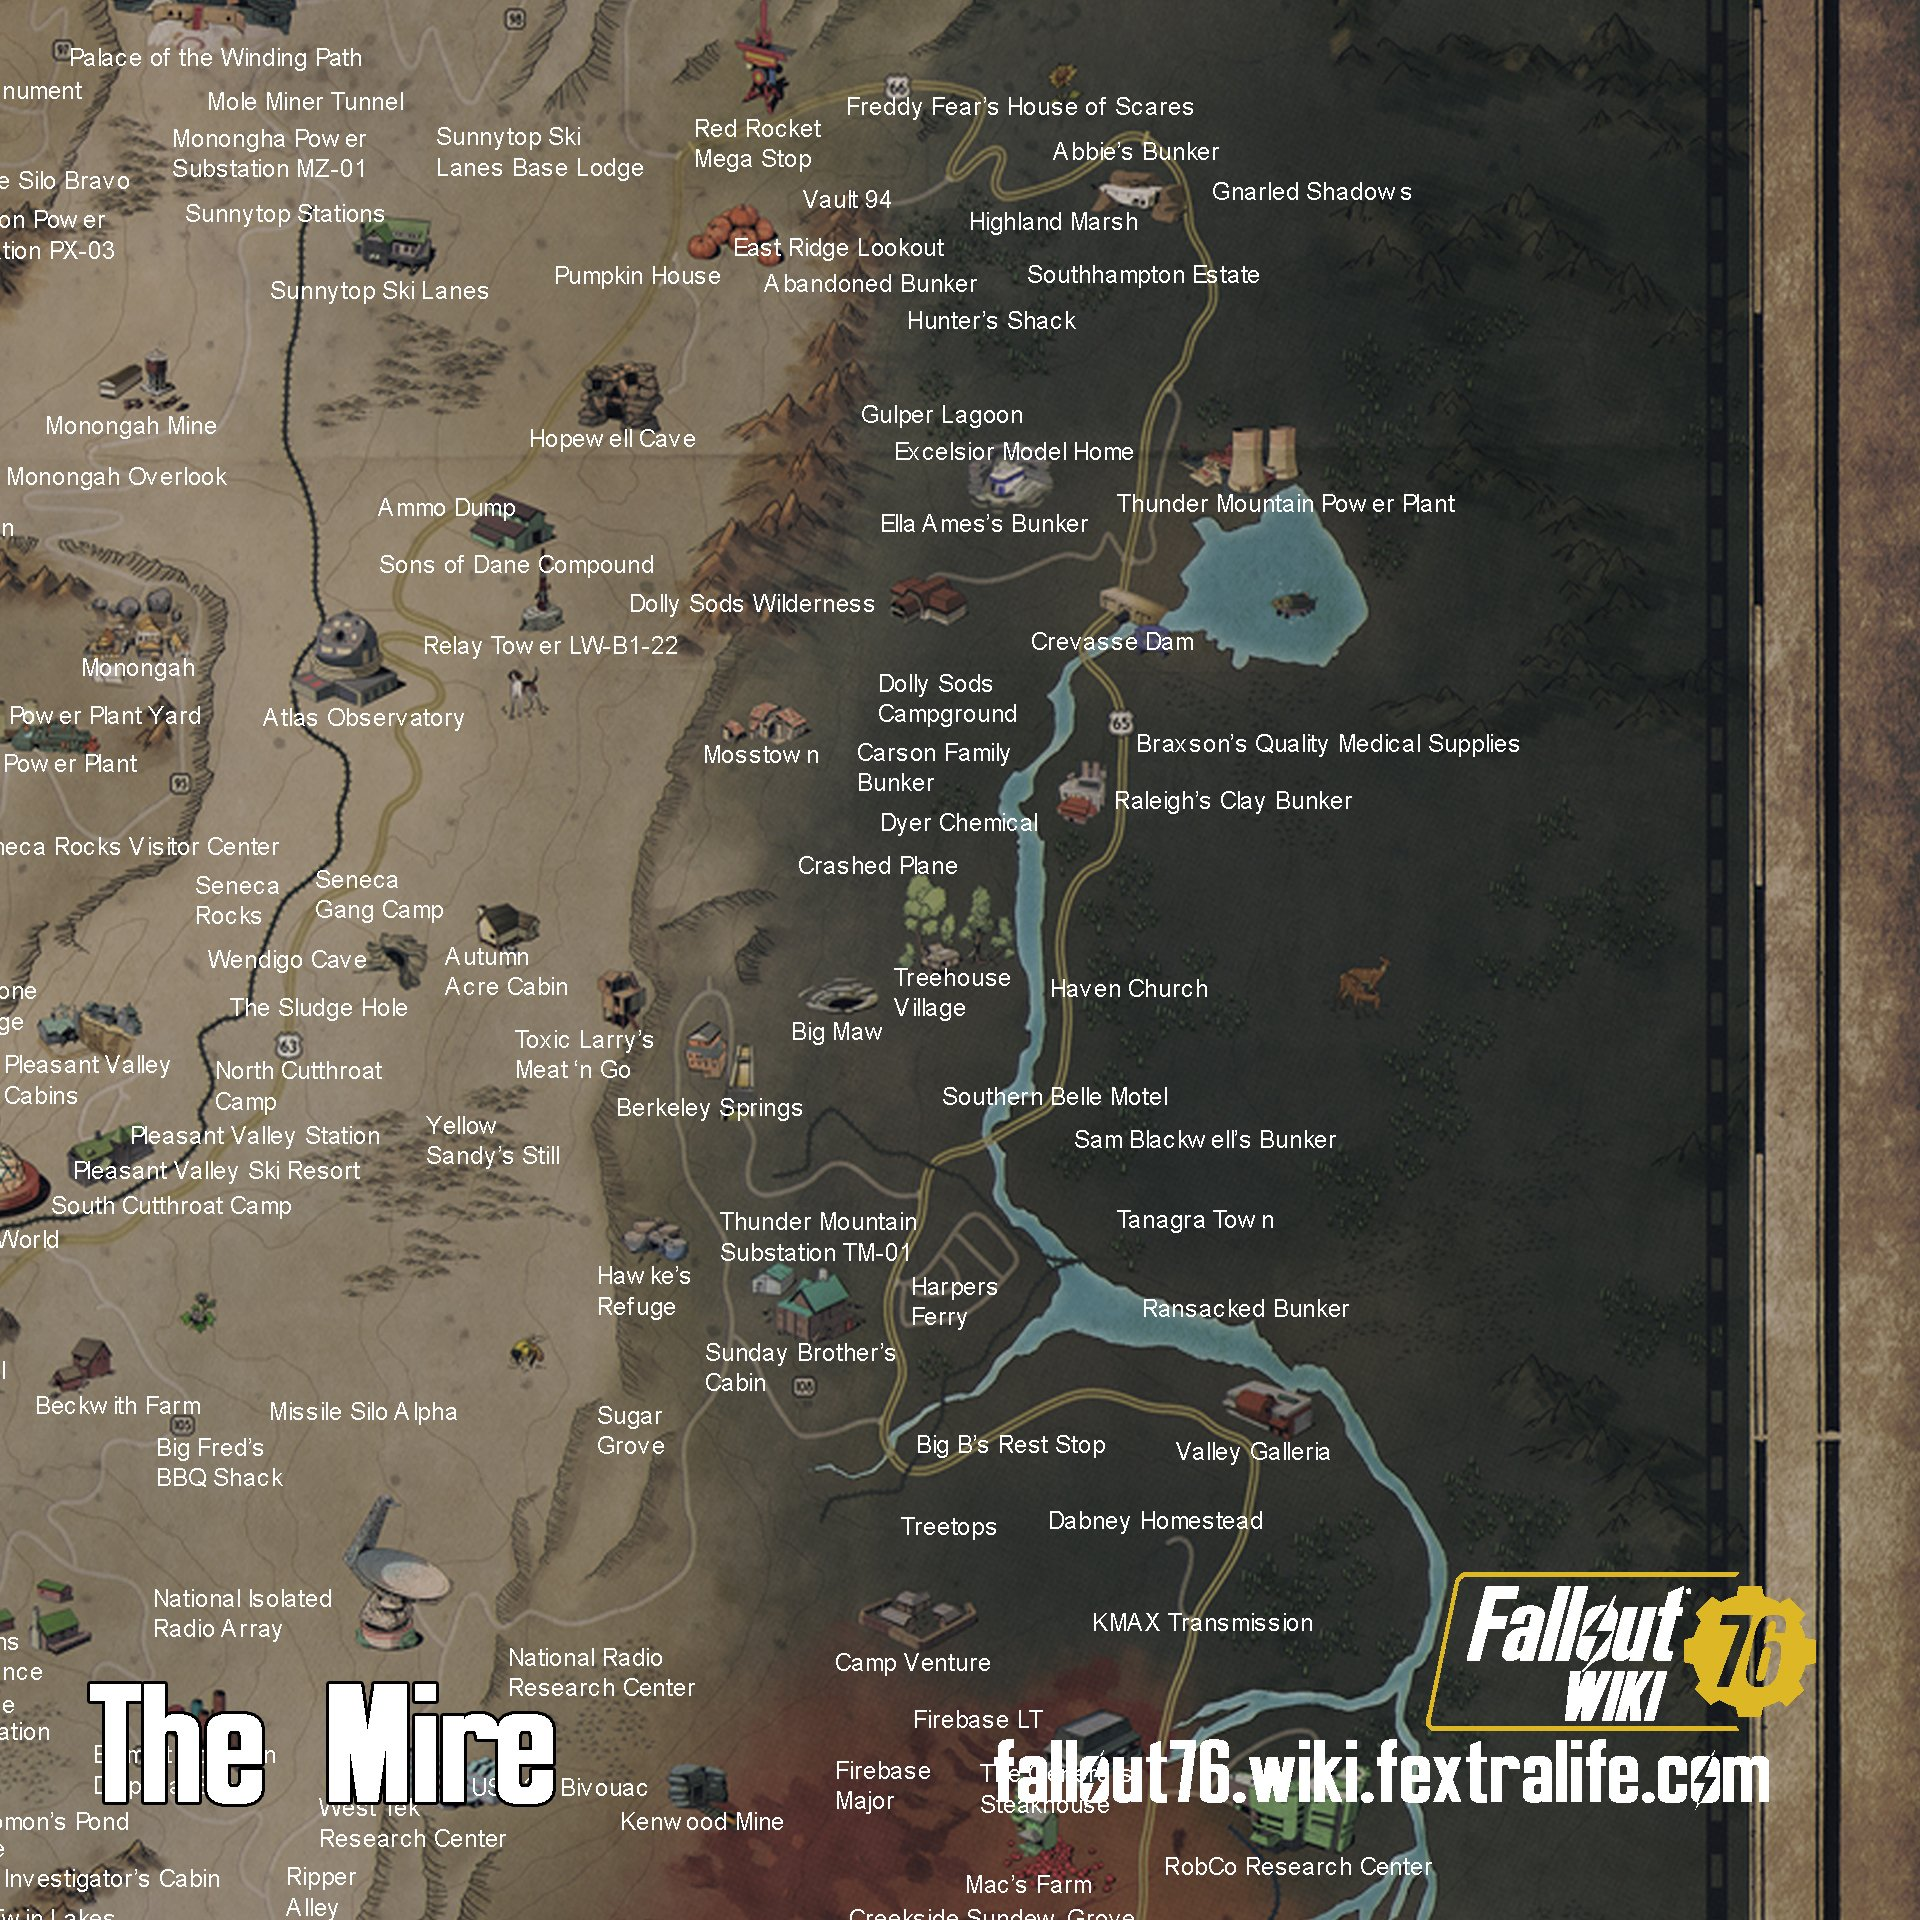 The Mire | Fallout 76 Wiki